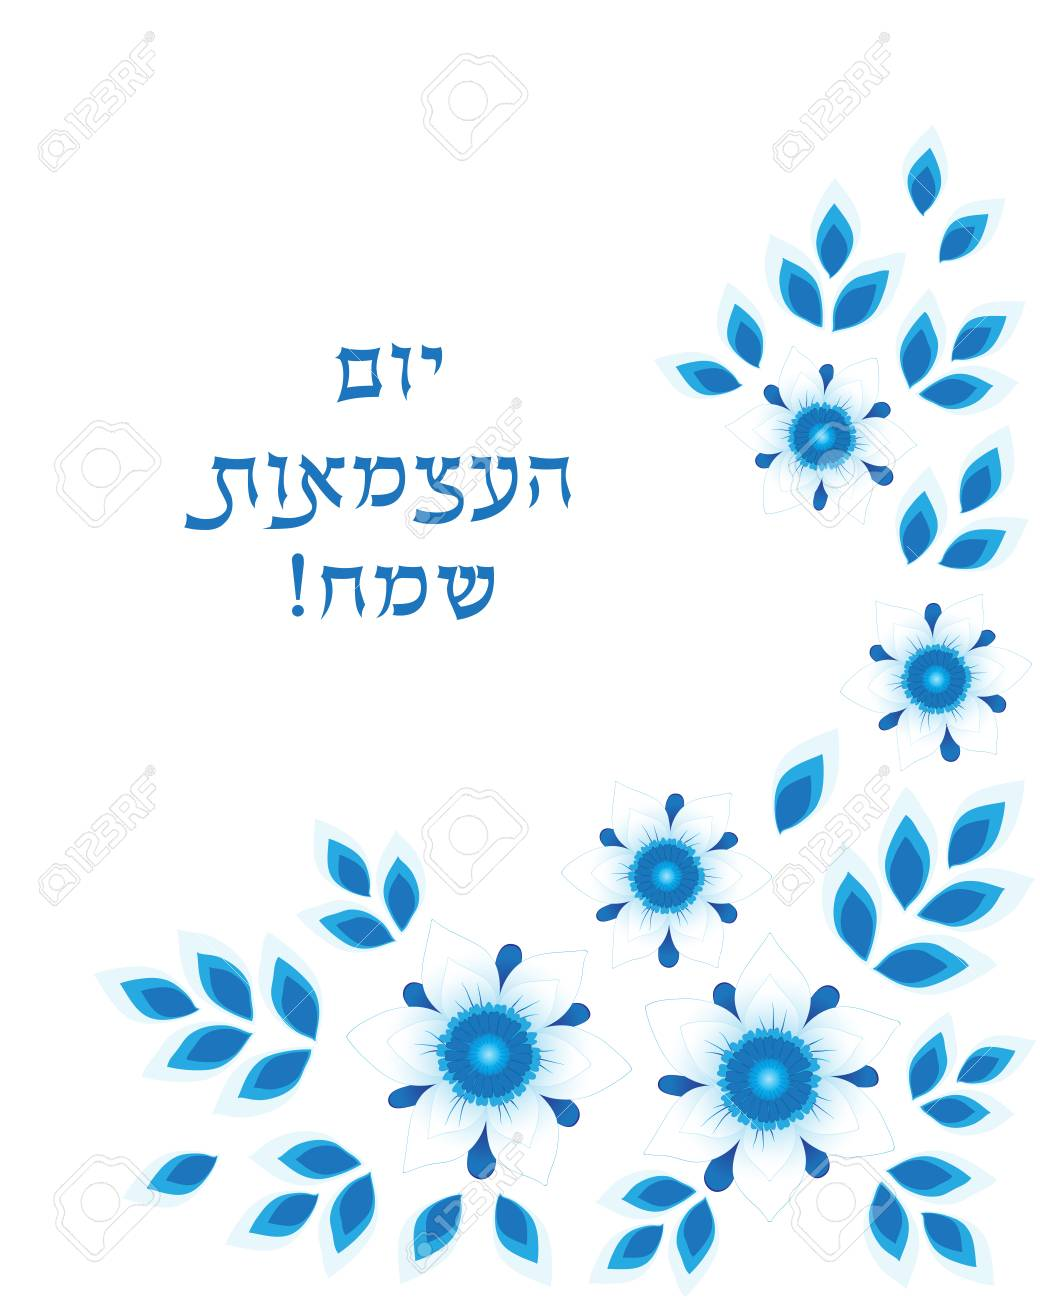 Israel independence day jewish holiday greeting card with blue israel independence day jewish holiday greeting card with blue and white flowers greeting m4hsunfo